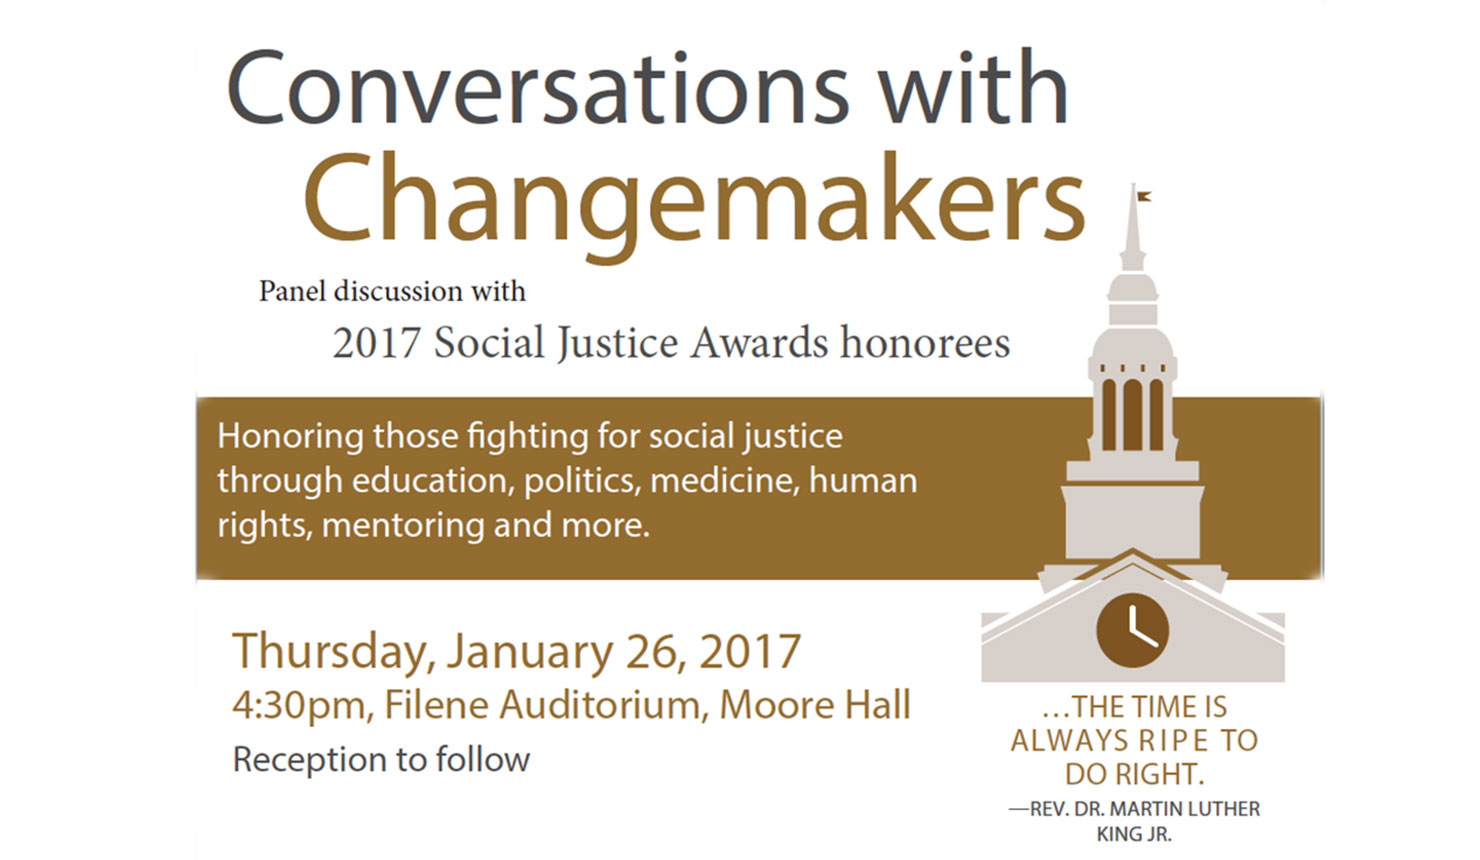 Conversations with Changemakers: Panel Discussion with 2017 Social Justice Award Honorees